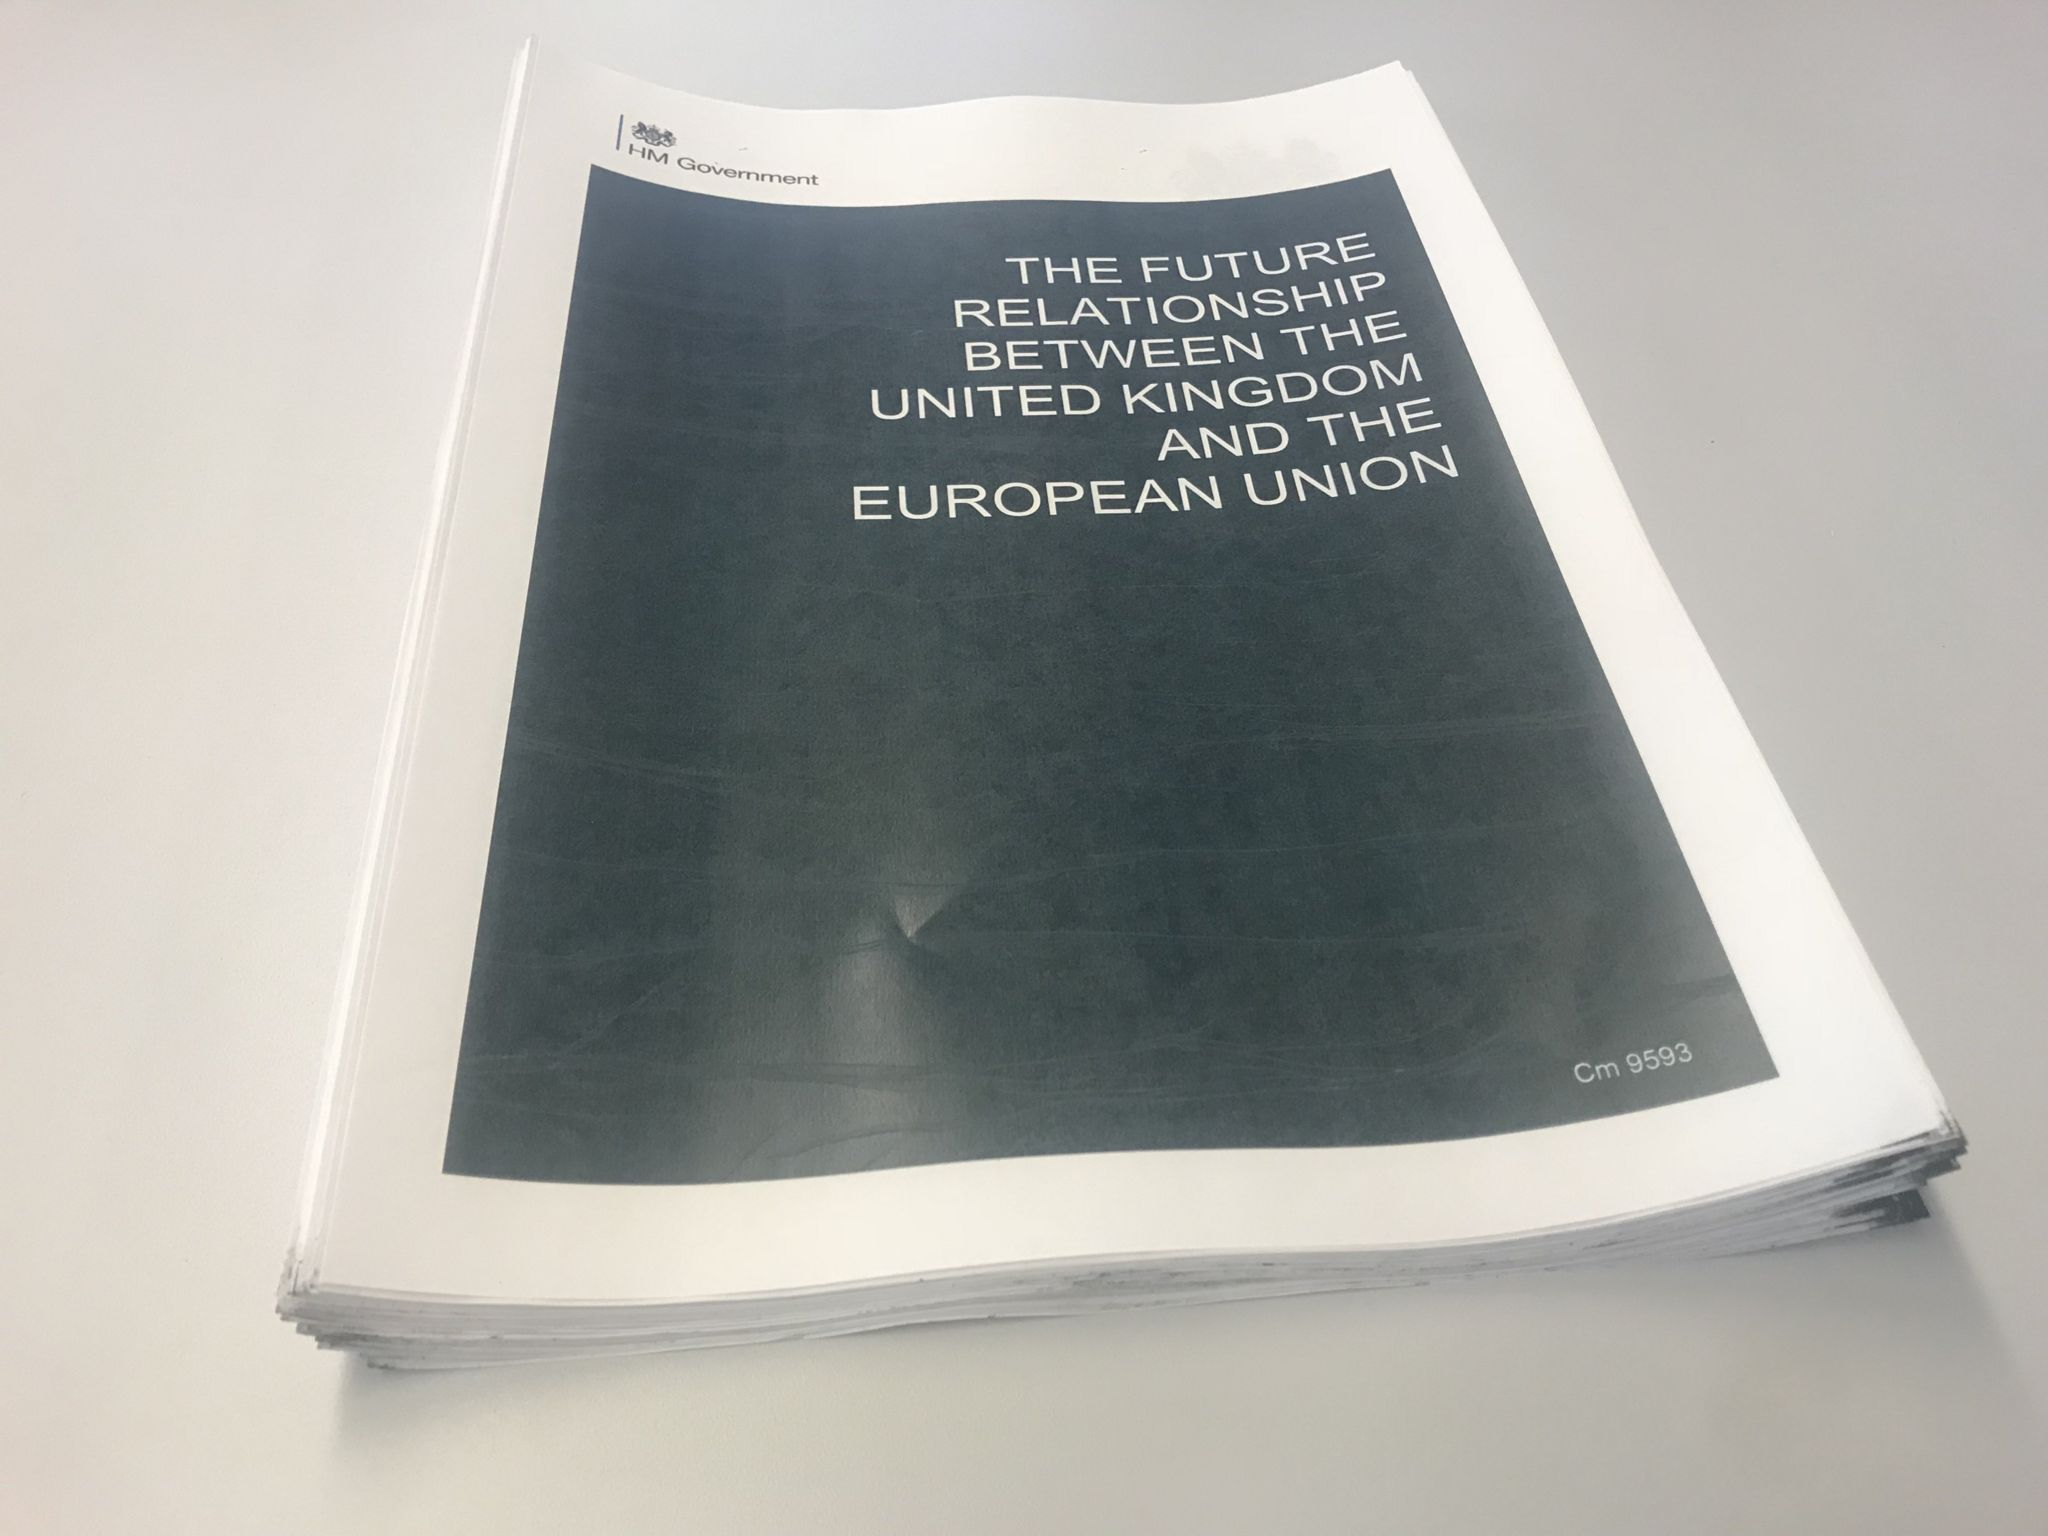 The front cover of the Brexit White Paper